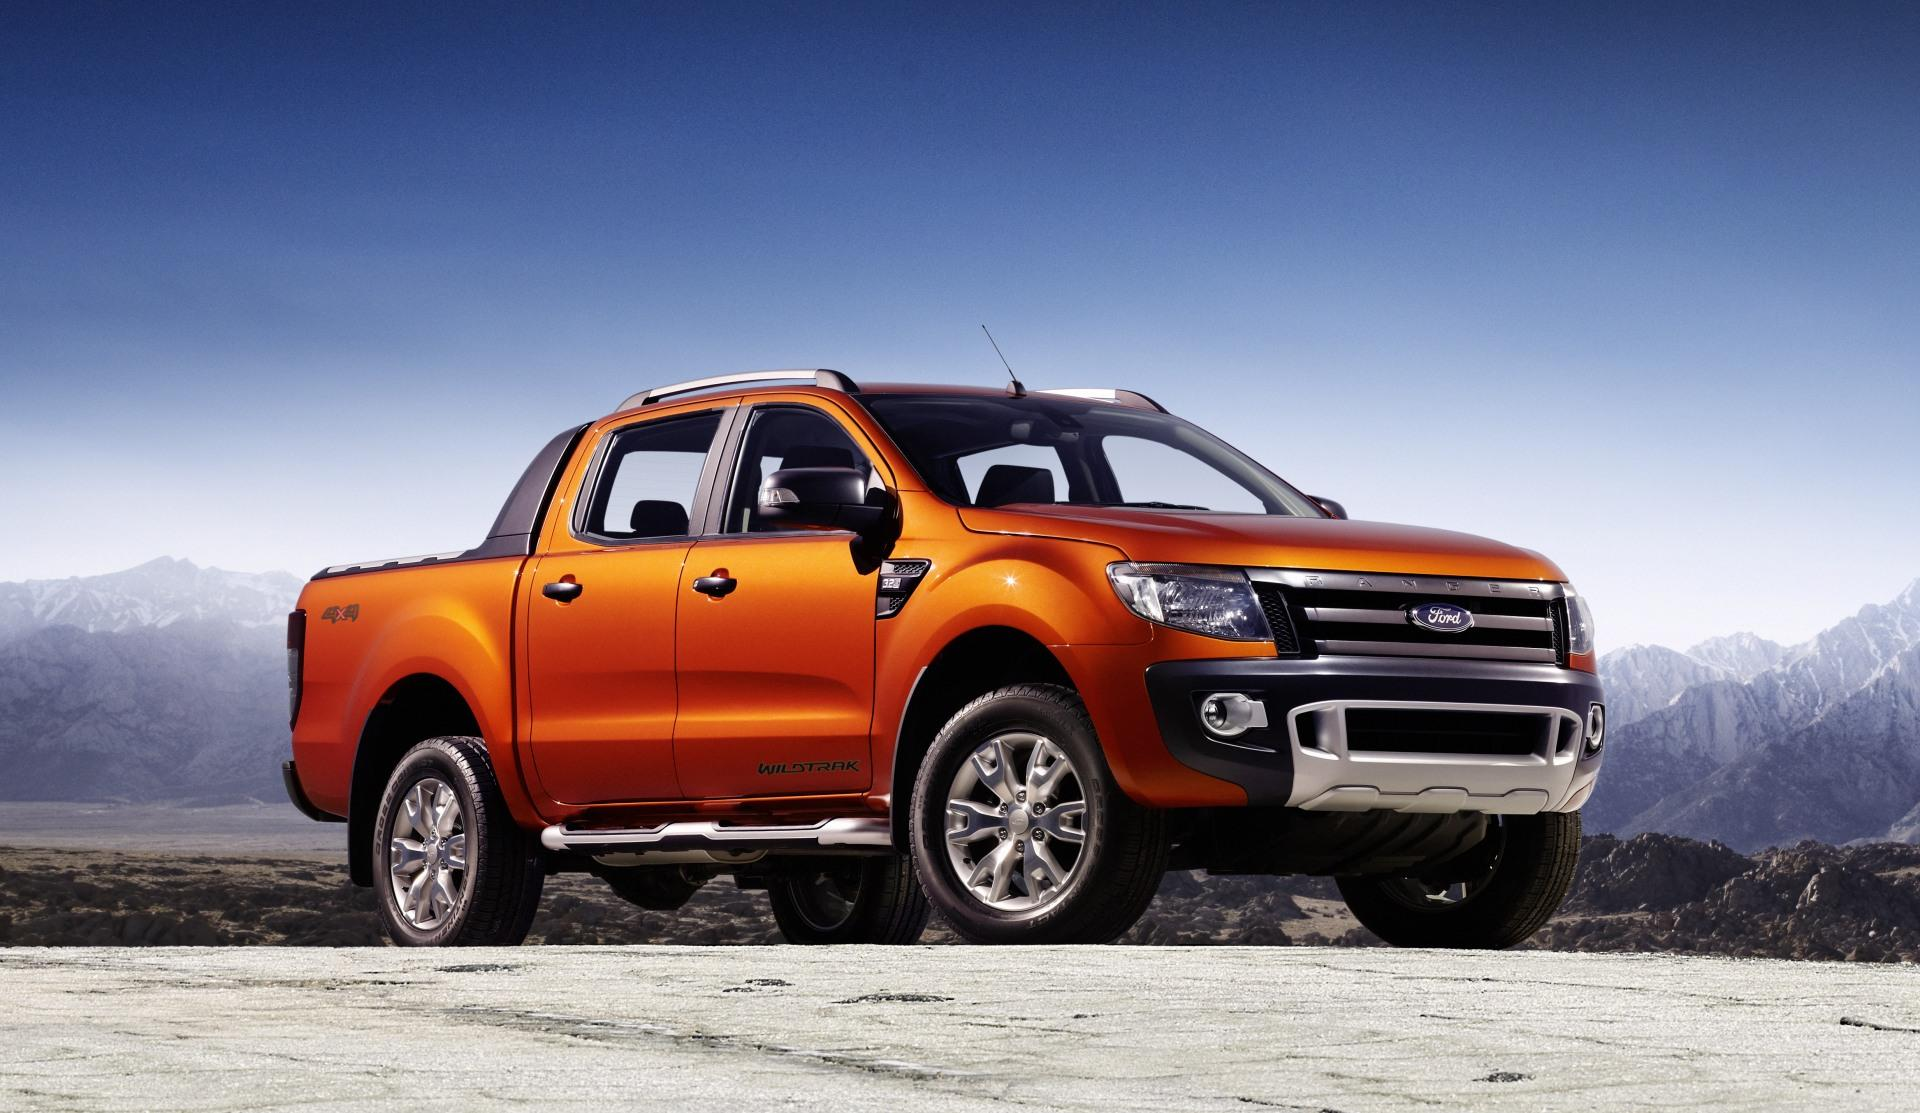 2011 Ford Ranger Wildtrak News And Information Research And Pricing